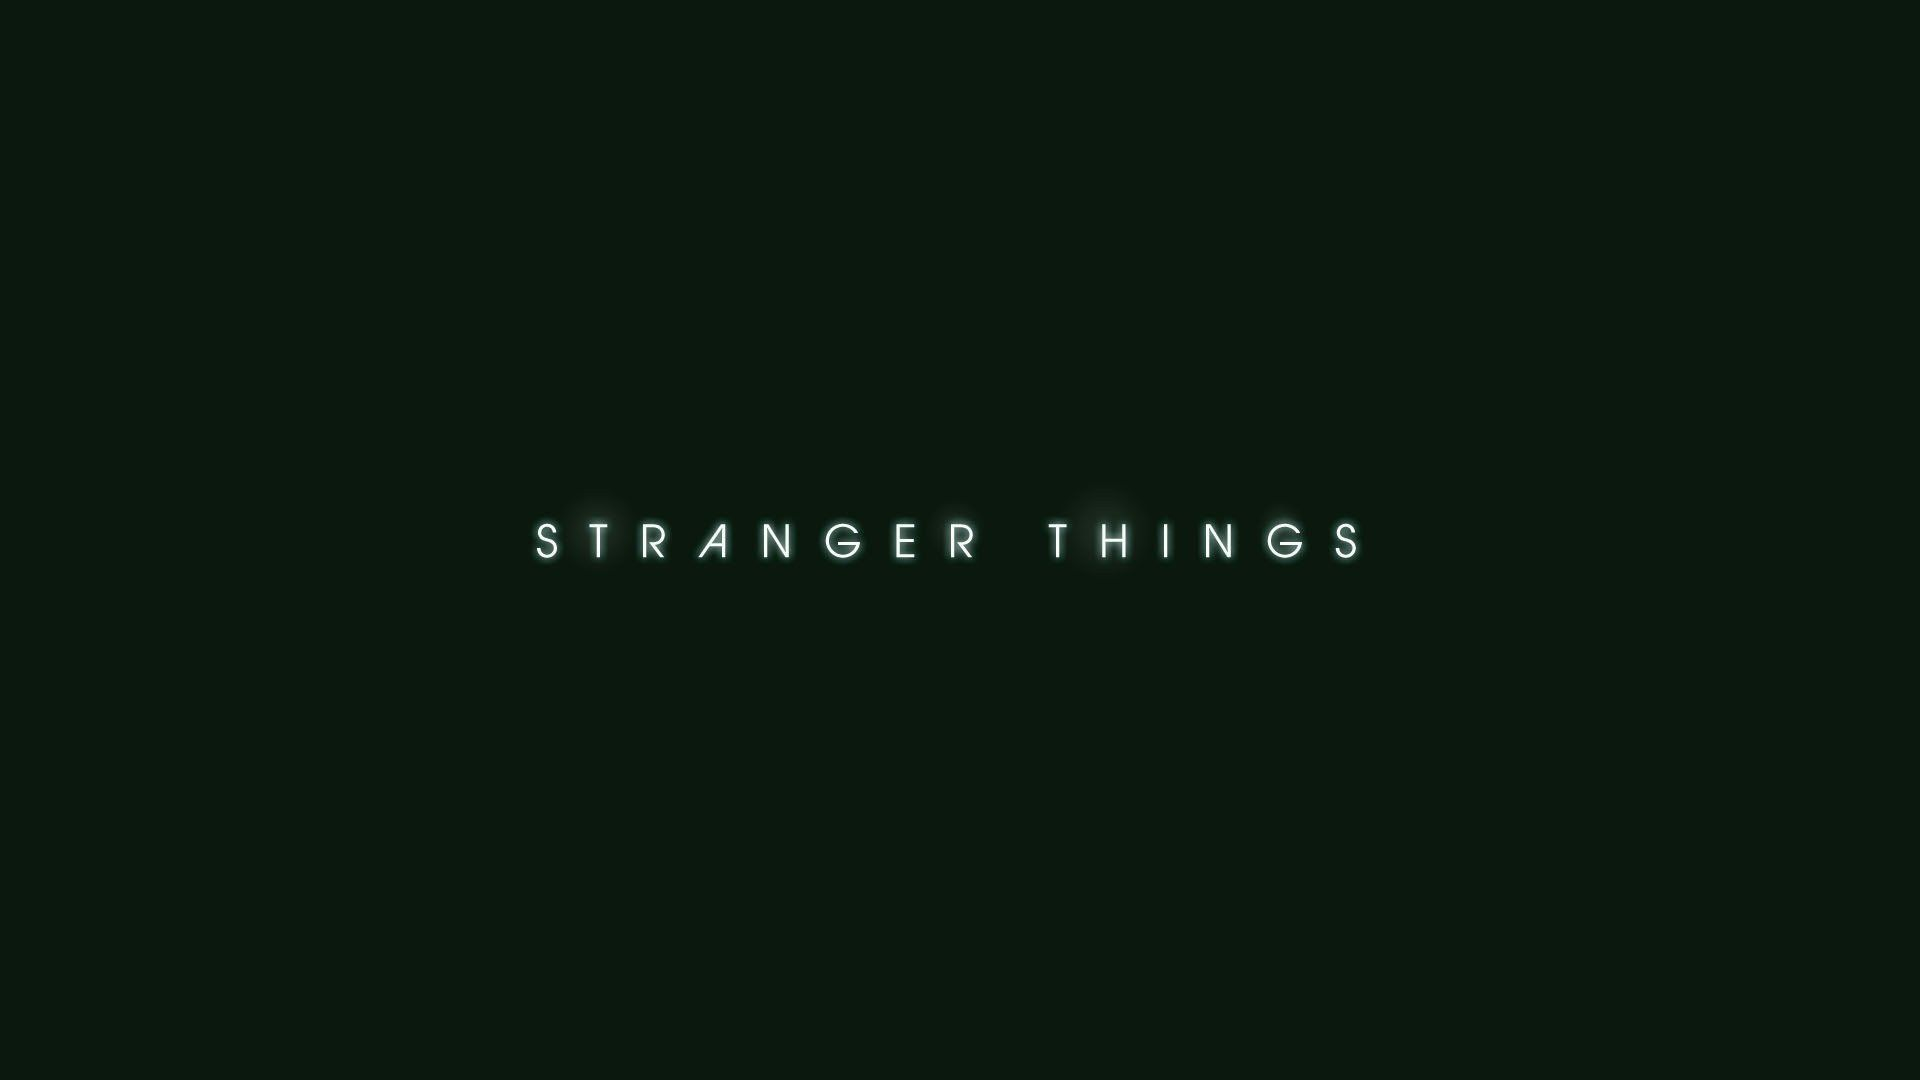 Stranger Things Wallpapers Hd Stranger Things Wallpaper